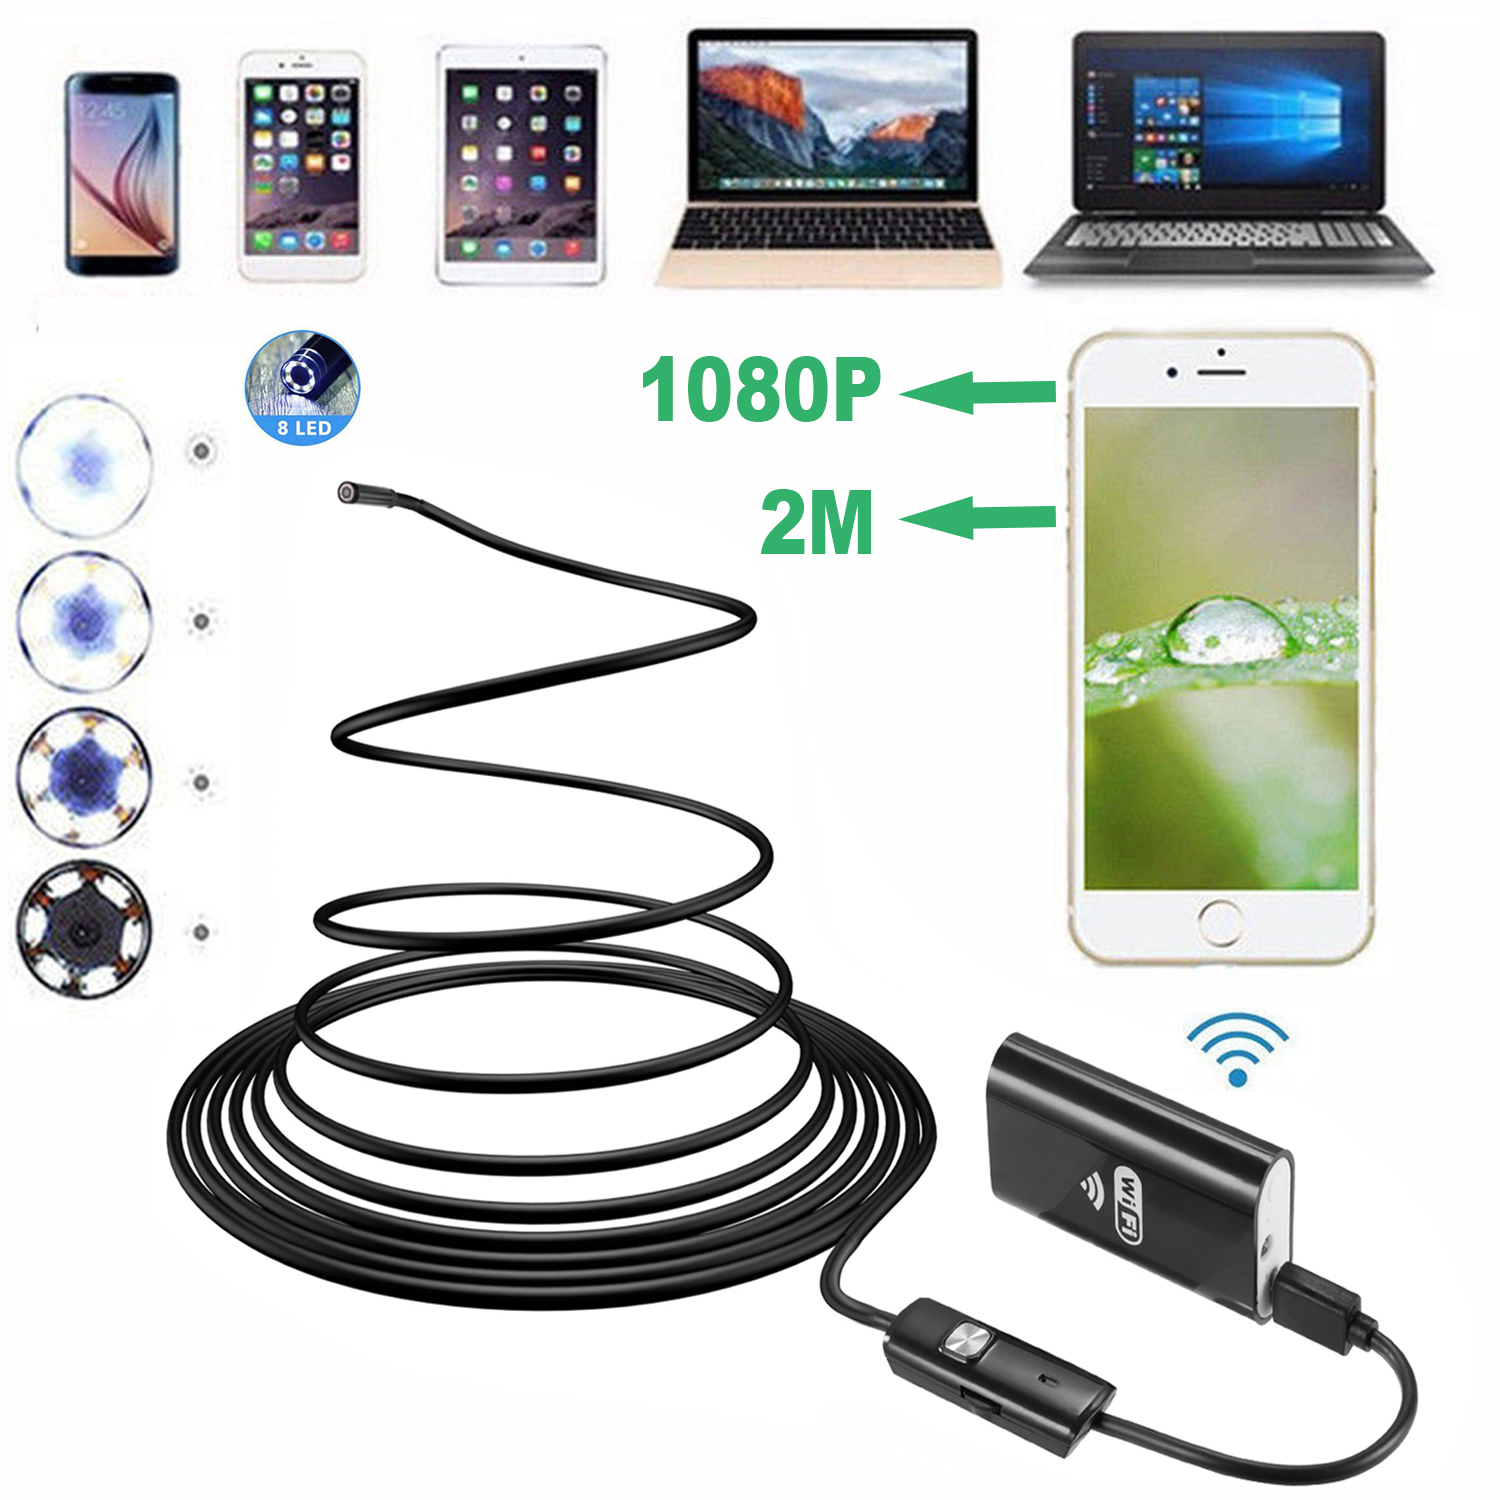 1080P WIFI Endoscope Camera 8mm HD Wireless Inspection Camera Endoscop 2M 3.5M 5M Flexible WIFI Endoscope Camera for Android IOS image